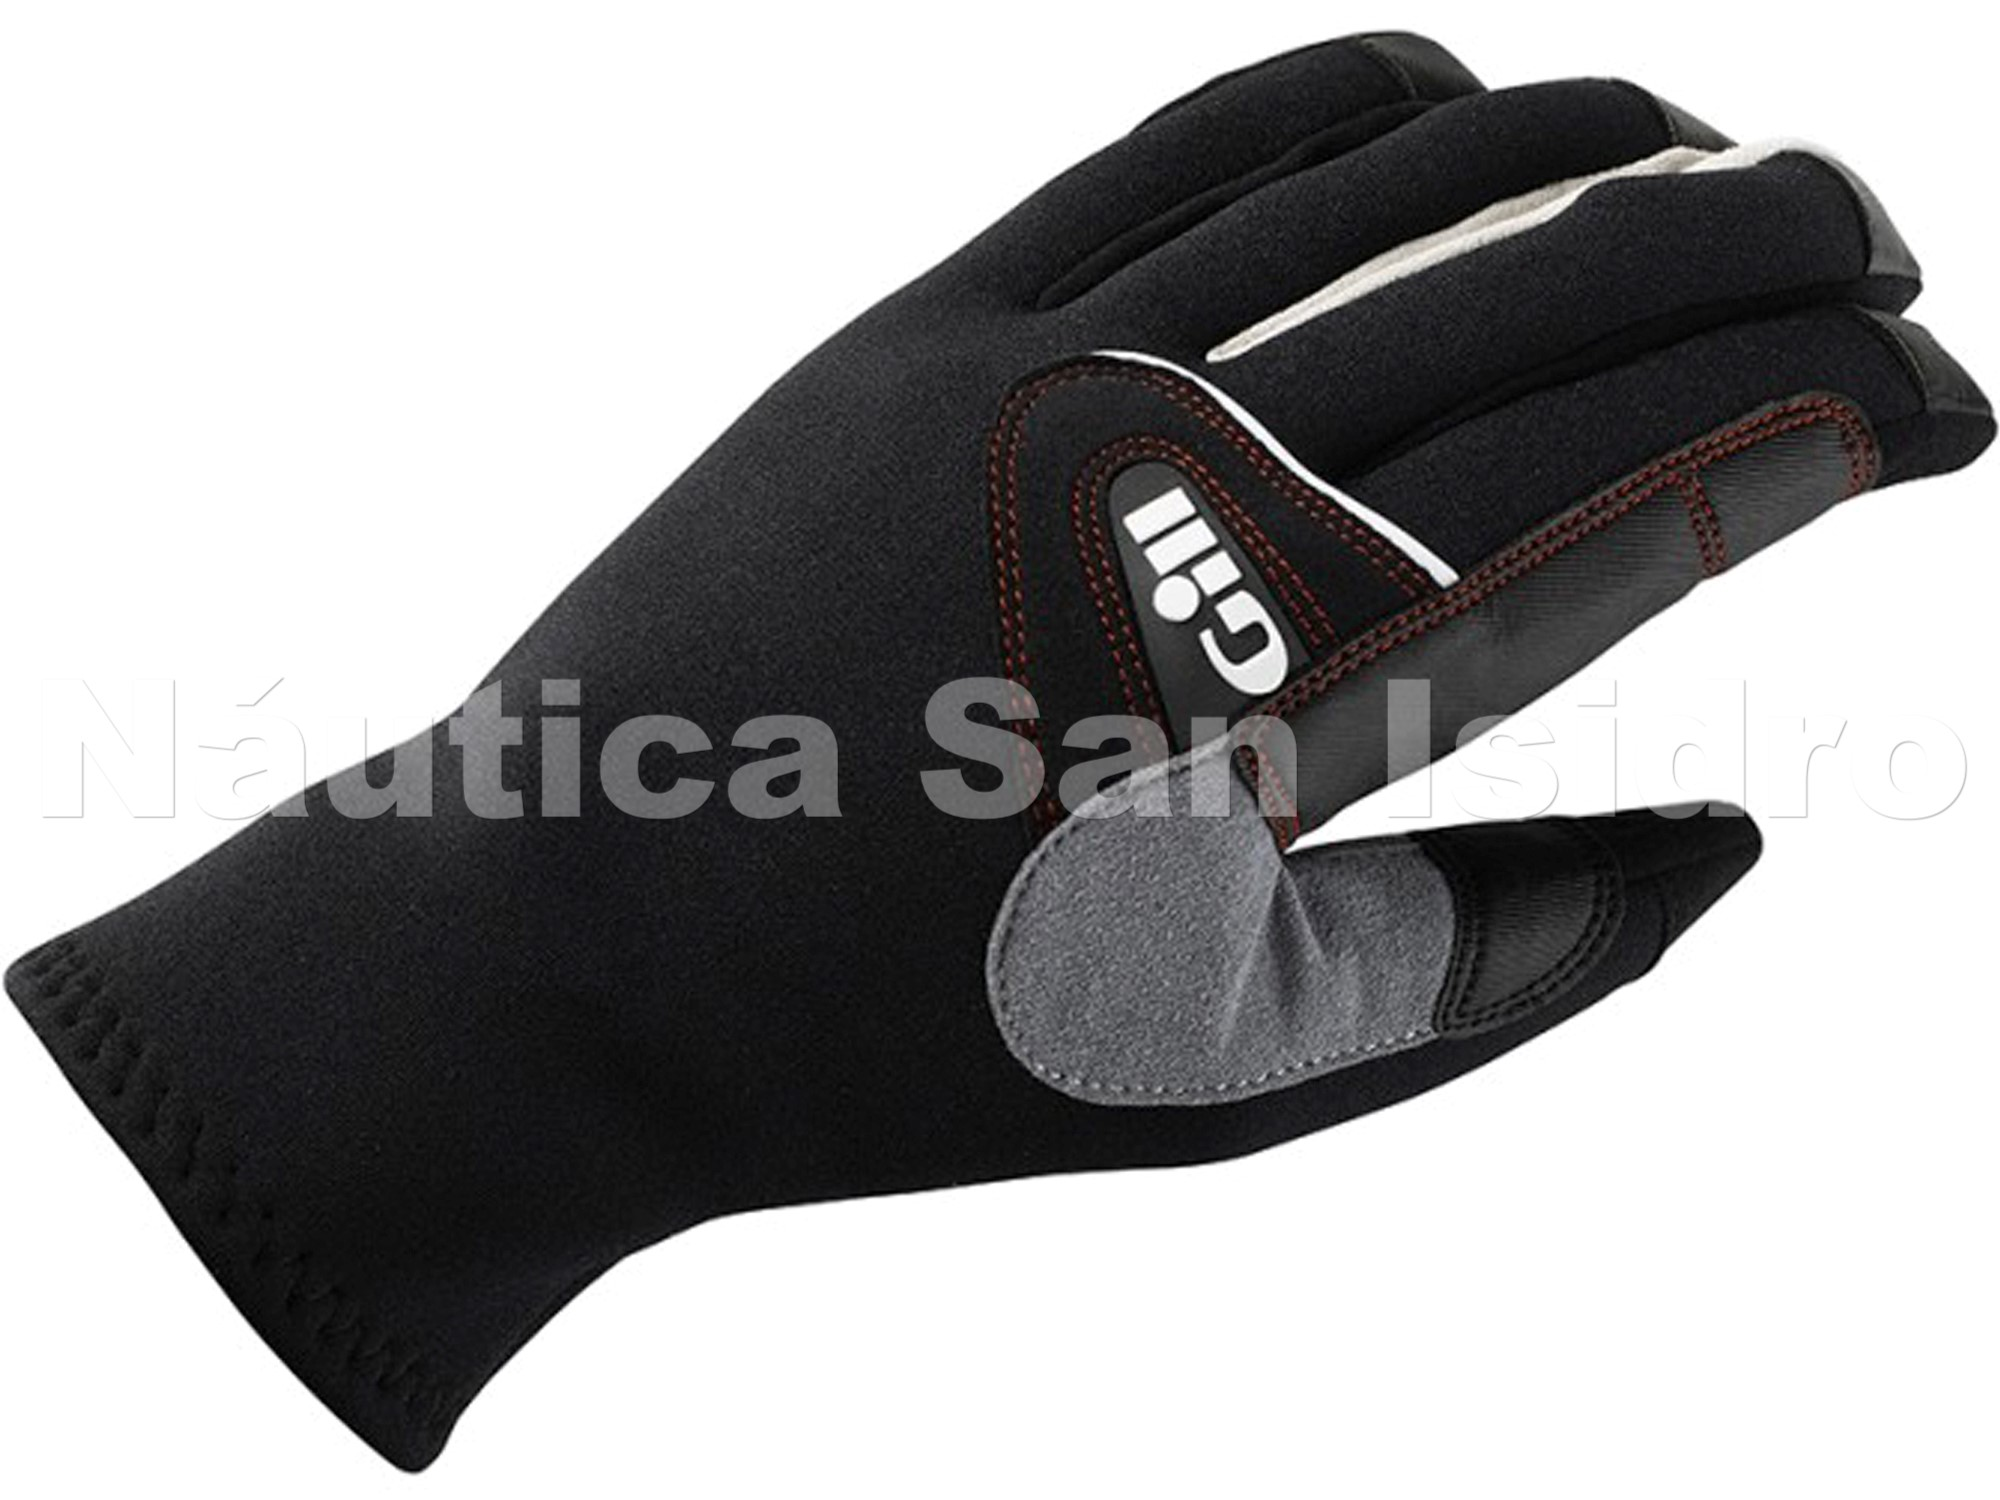 guantes-gill-neoprene-3seasons-3.jpg